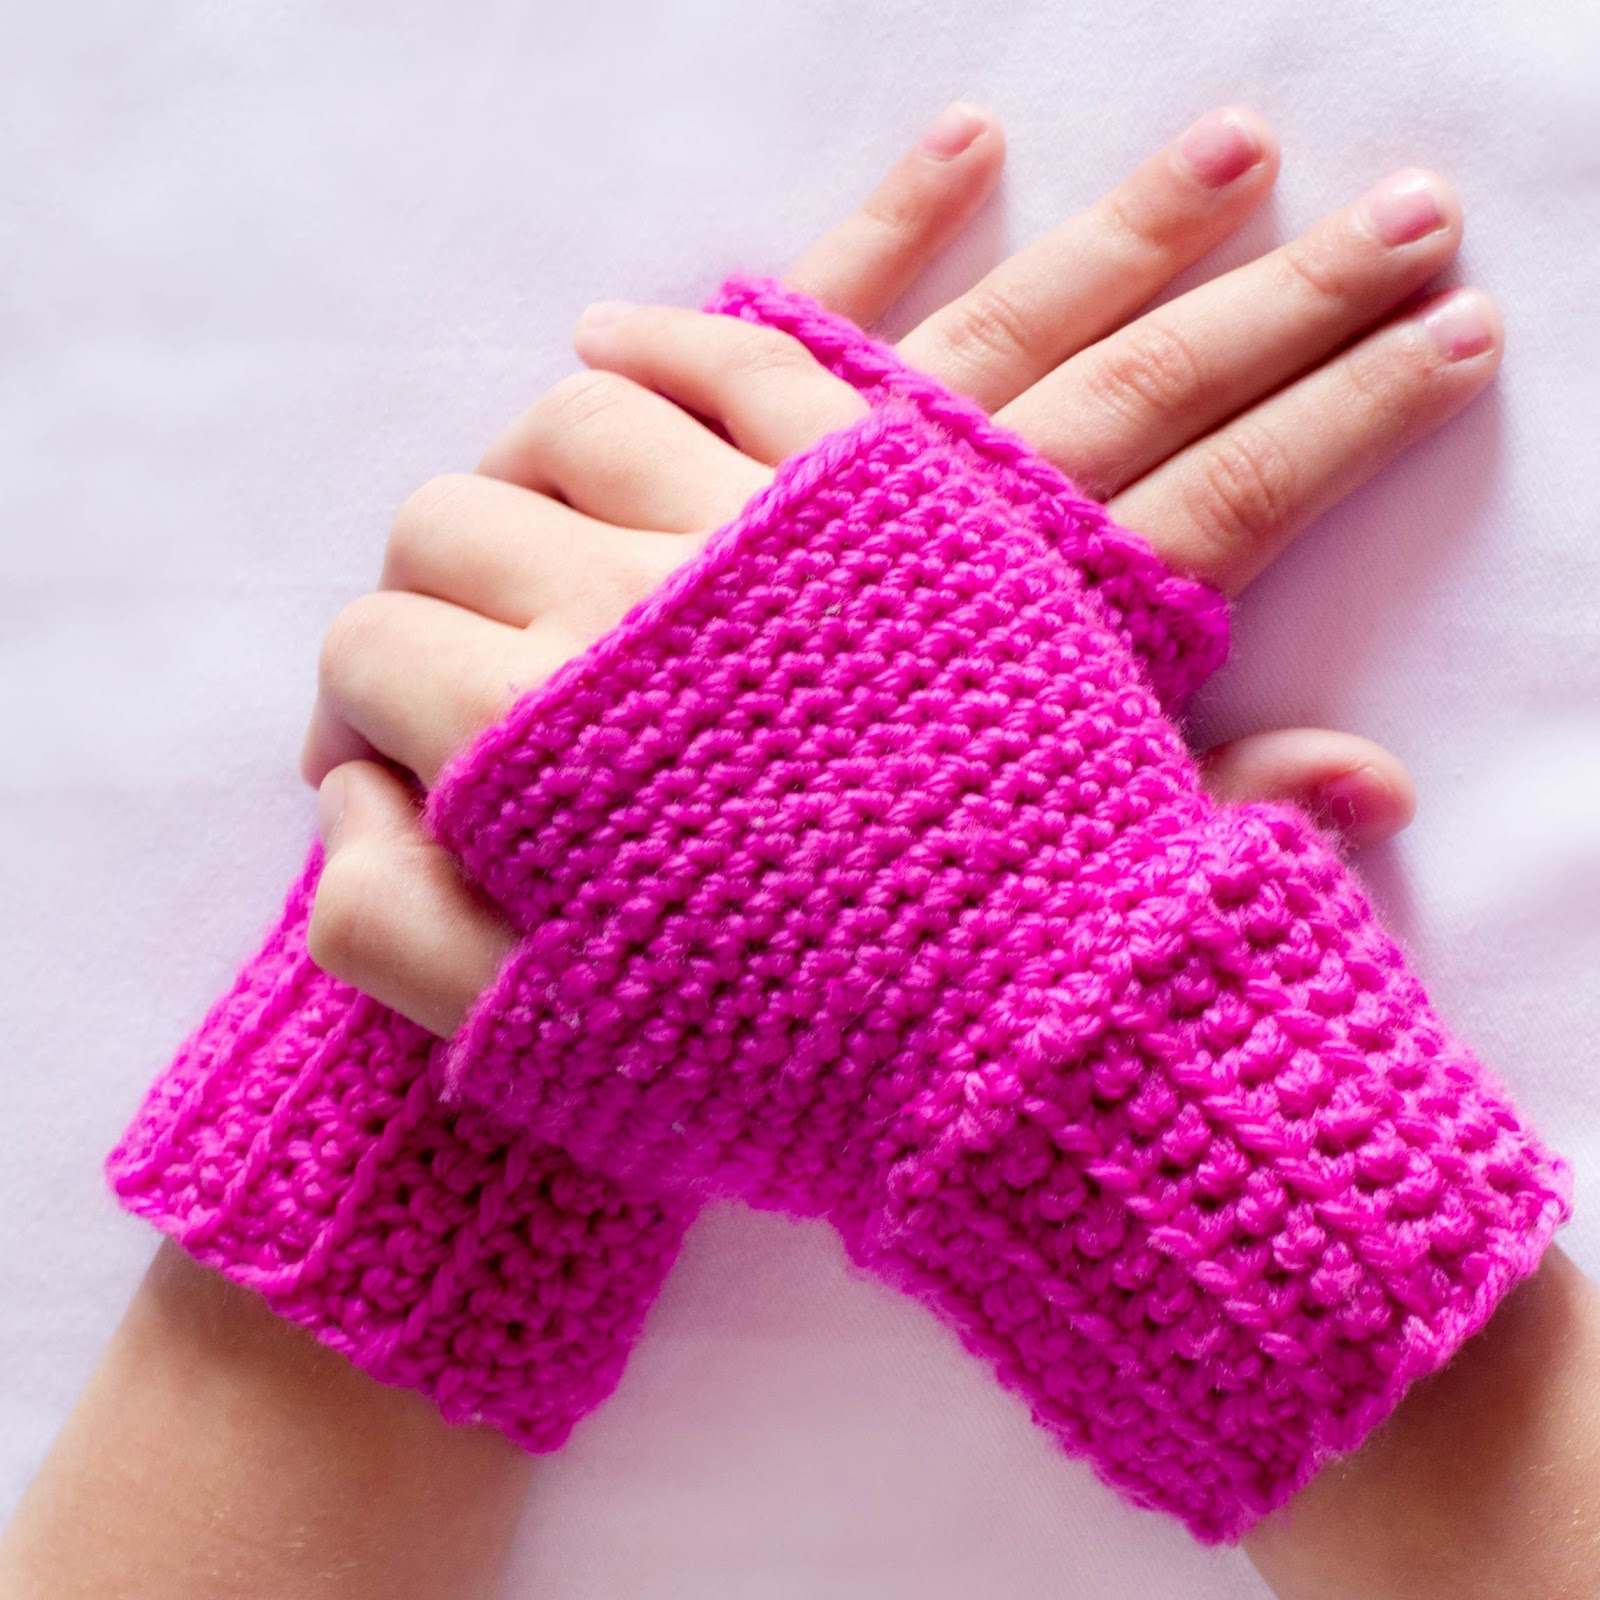 ... Crochet, Create: Princess In Pink ~ Basic Fingerless Gloves Crochet